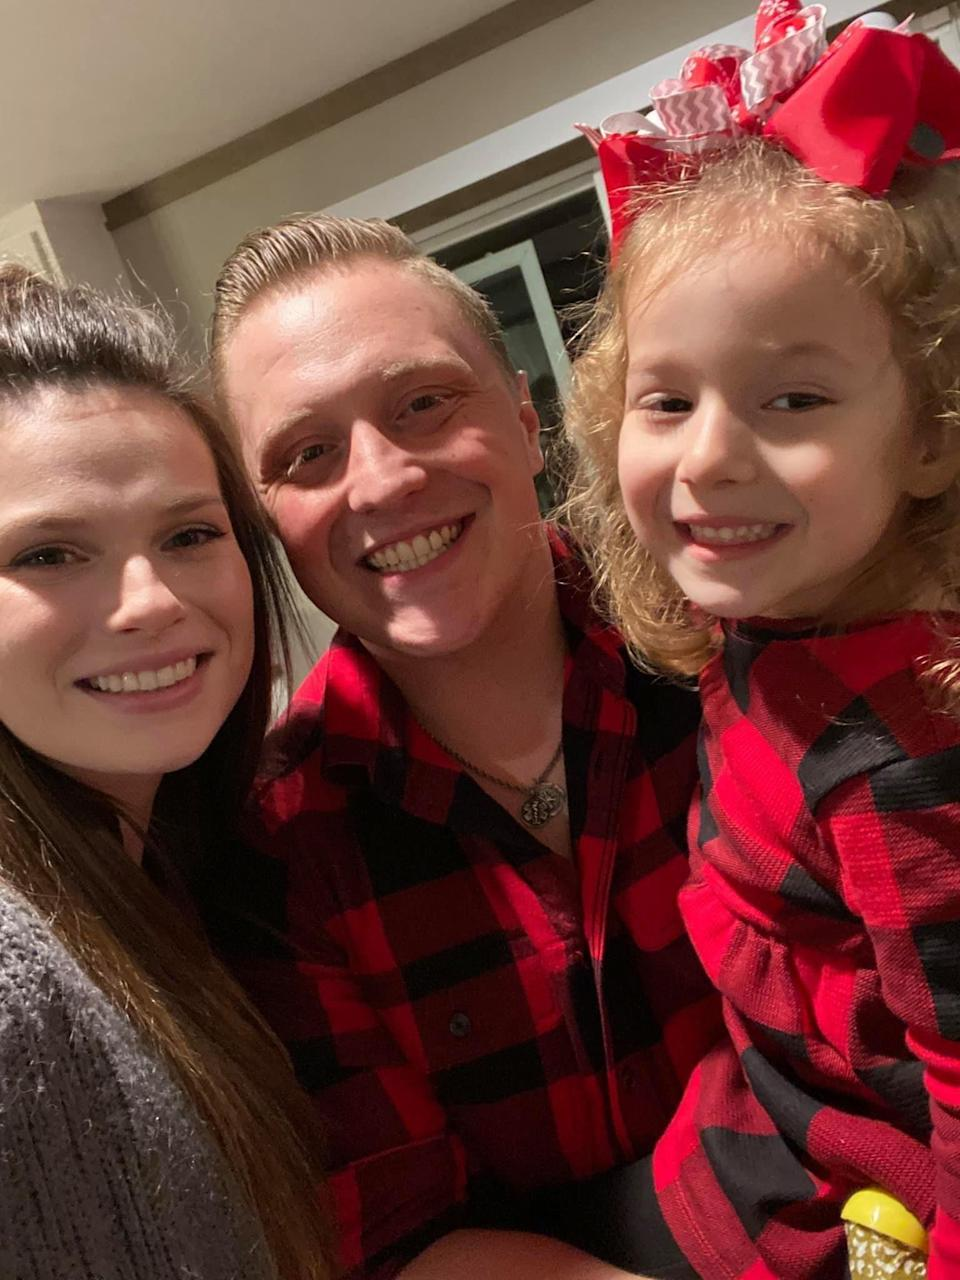 Lylah Baker and her parents, Josy and Dustin Baker, who have spent day and night with her at the hospital as she battles melioidosis.